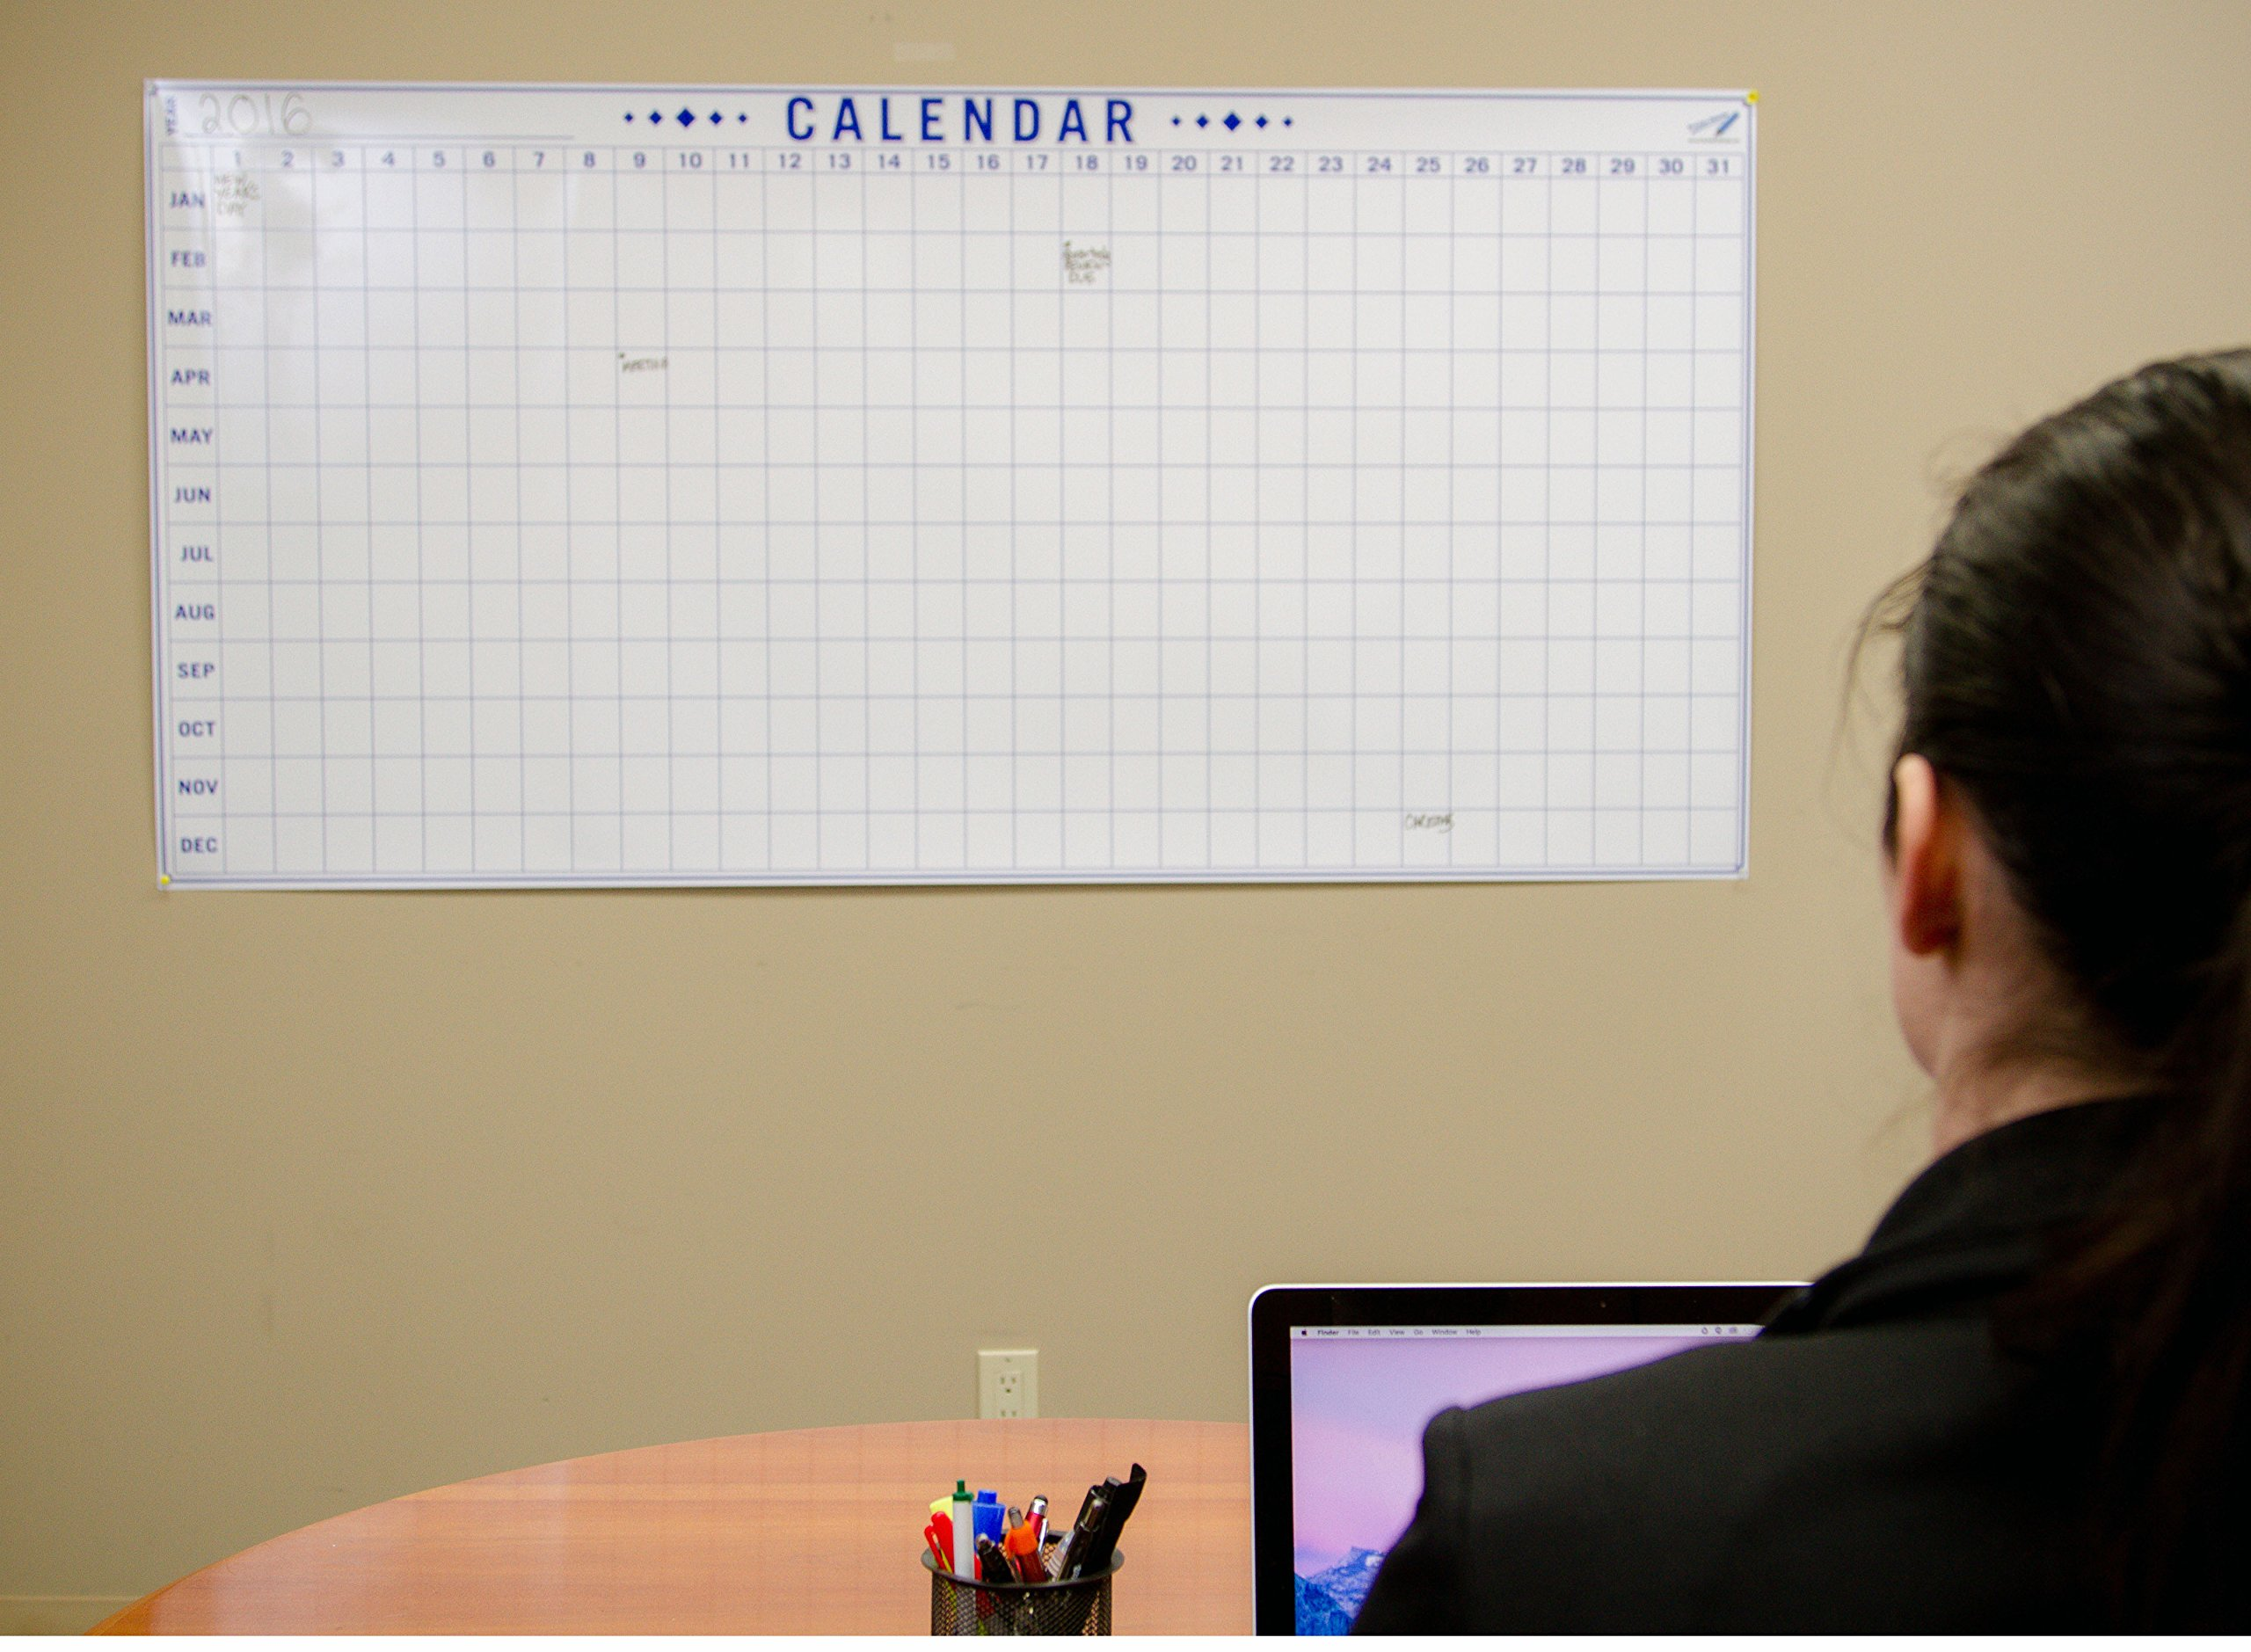 Dry Erase Julian Date Calendar - 36 x 72 Large Dry Erase Wall Calendar - Large Wall Calendar - Reusable Annual Calendar - Wall Planner with Vertical Dates and Horizontal Months by Oversize Planner by ABI Digital Solutions (Image #4)